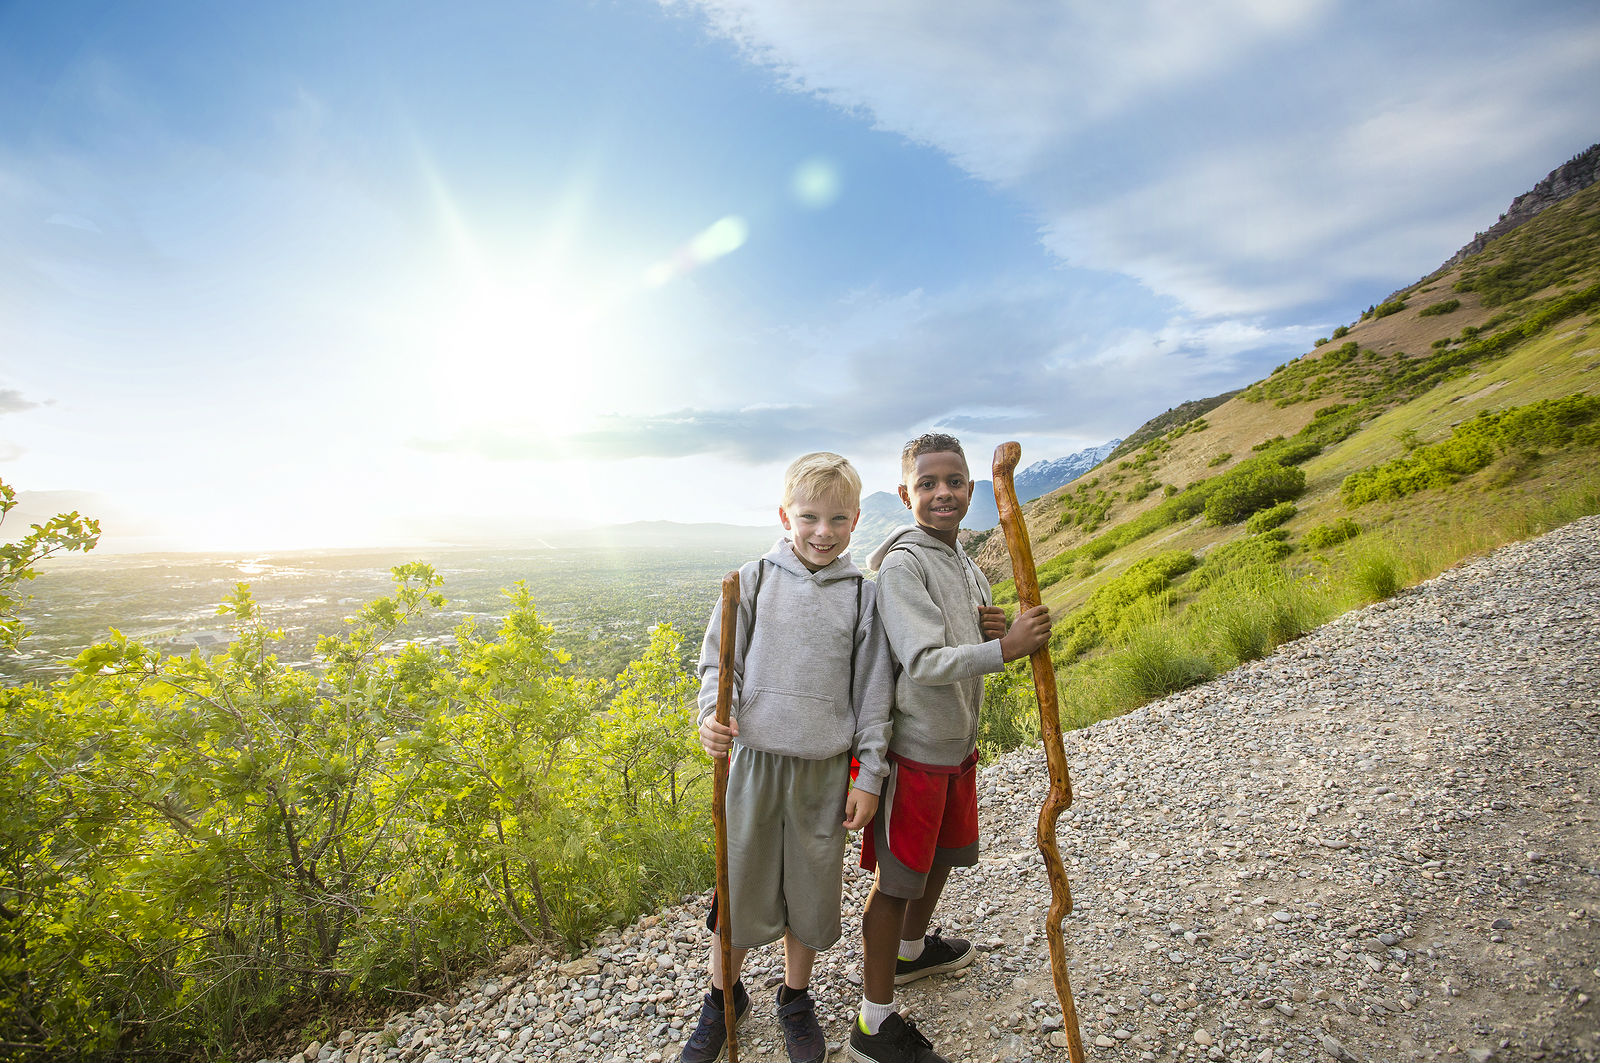 Lifelong Lessons Kids Can Learn From Family Adventures